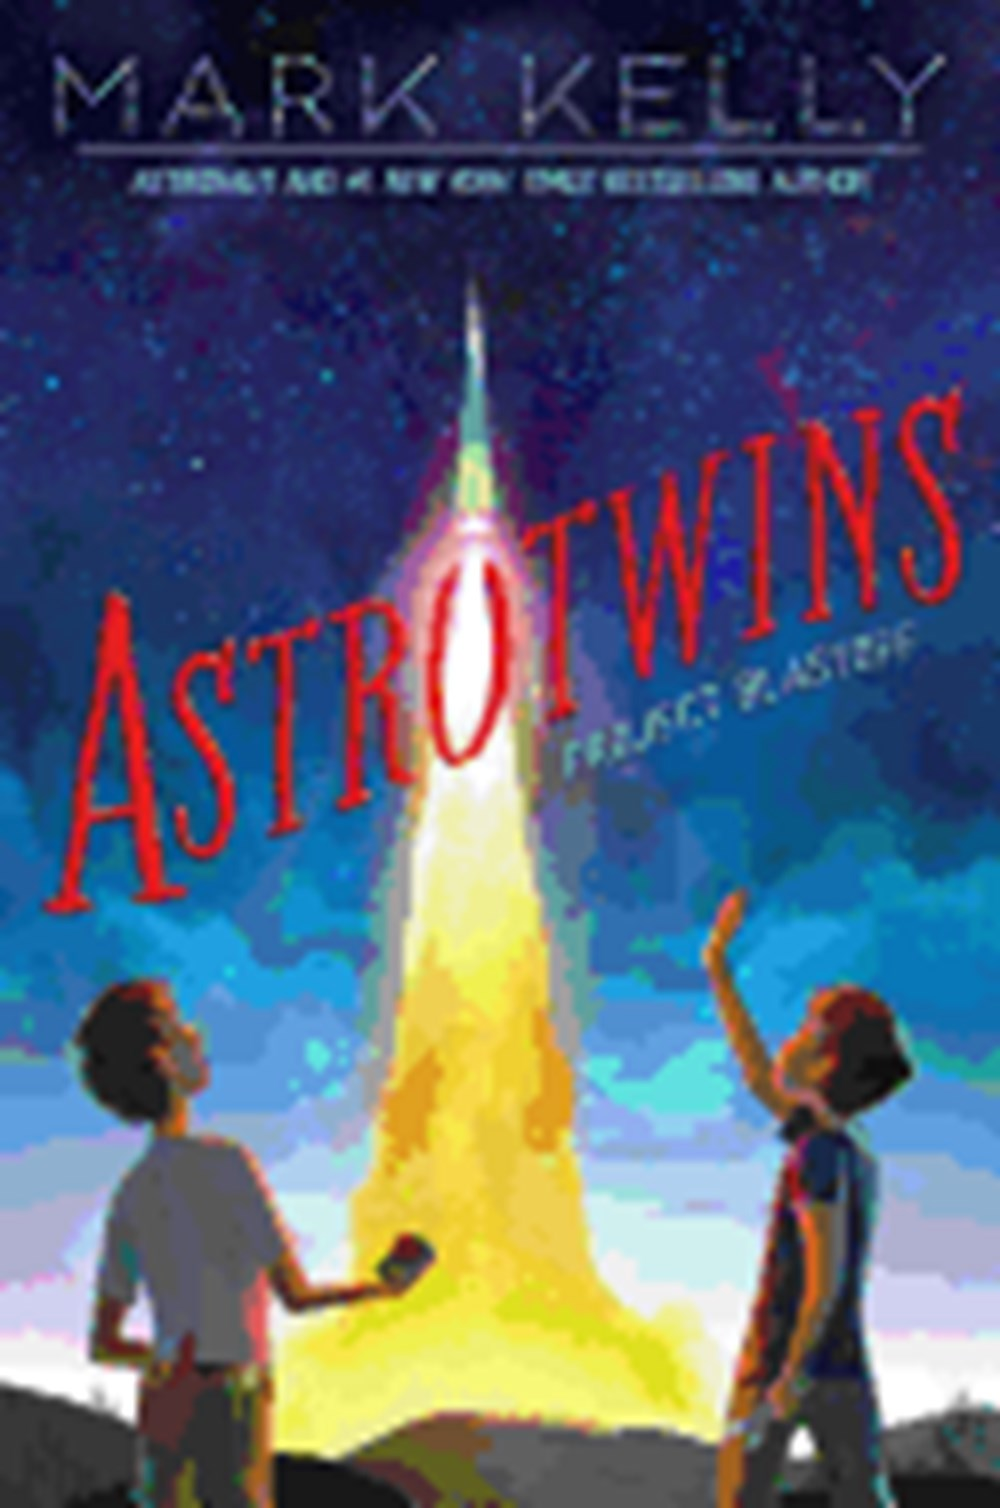 Astrotwins -- Project Blastoff (Reprint)